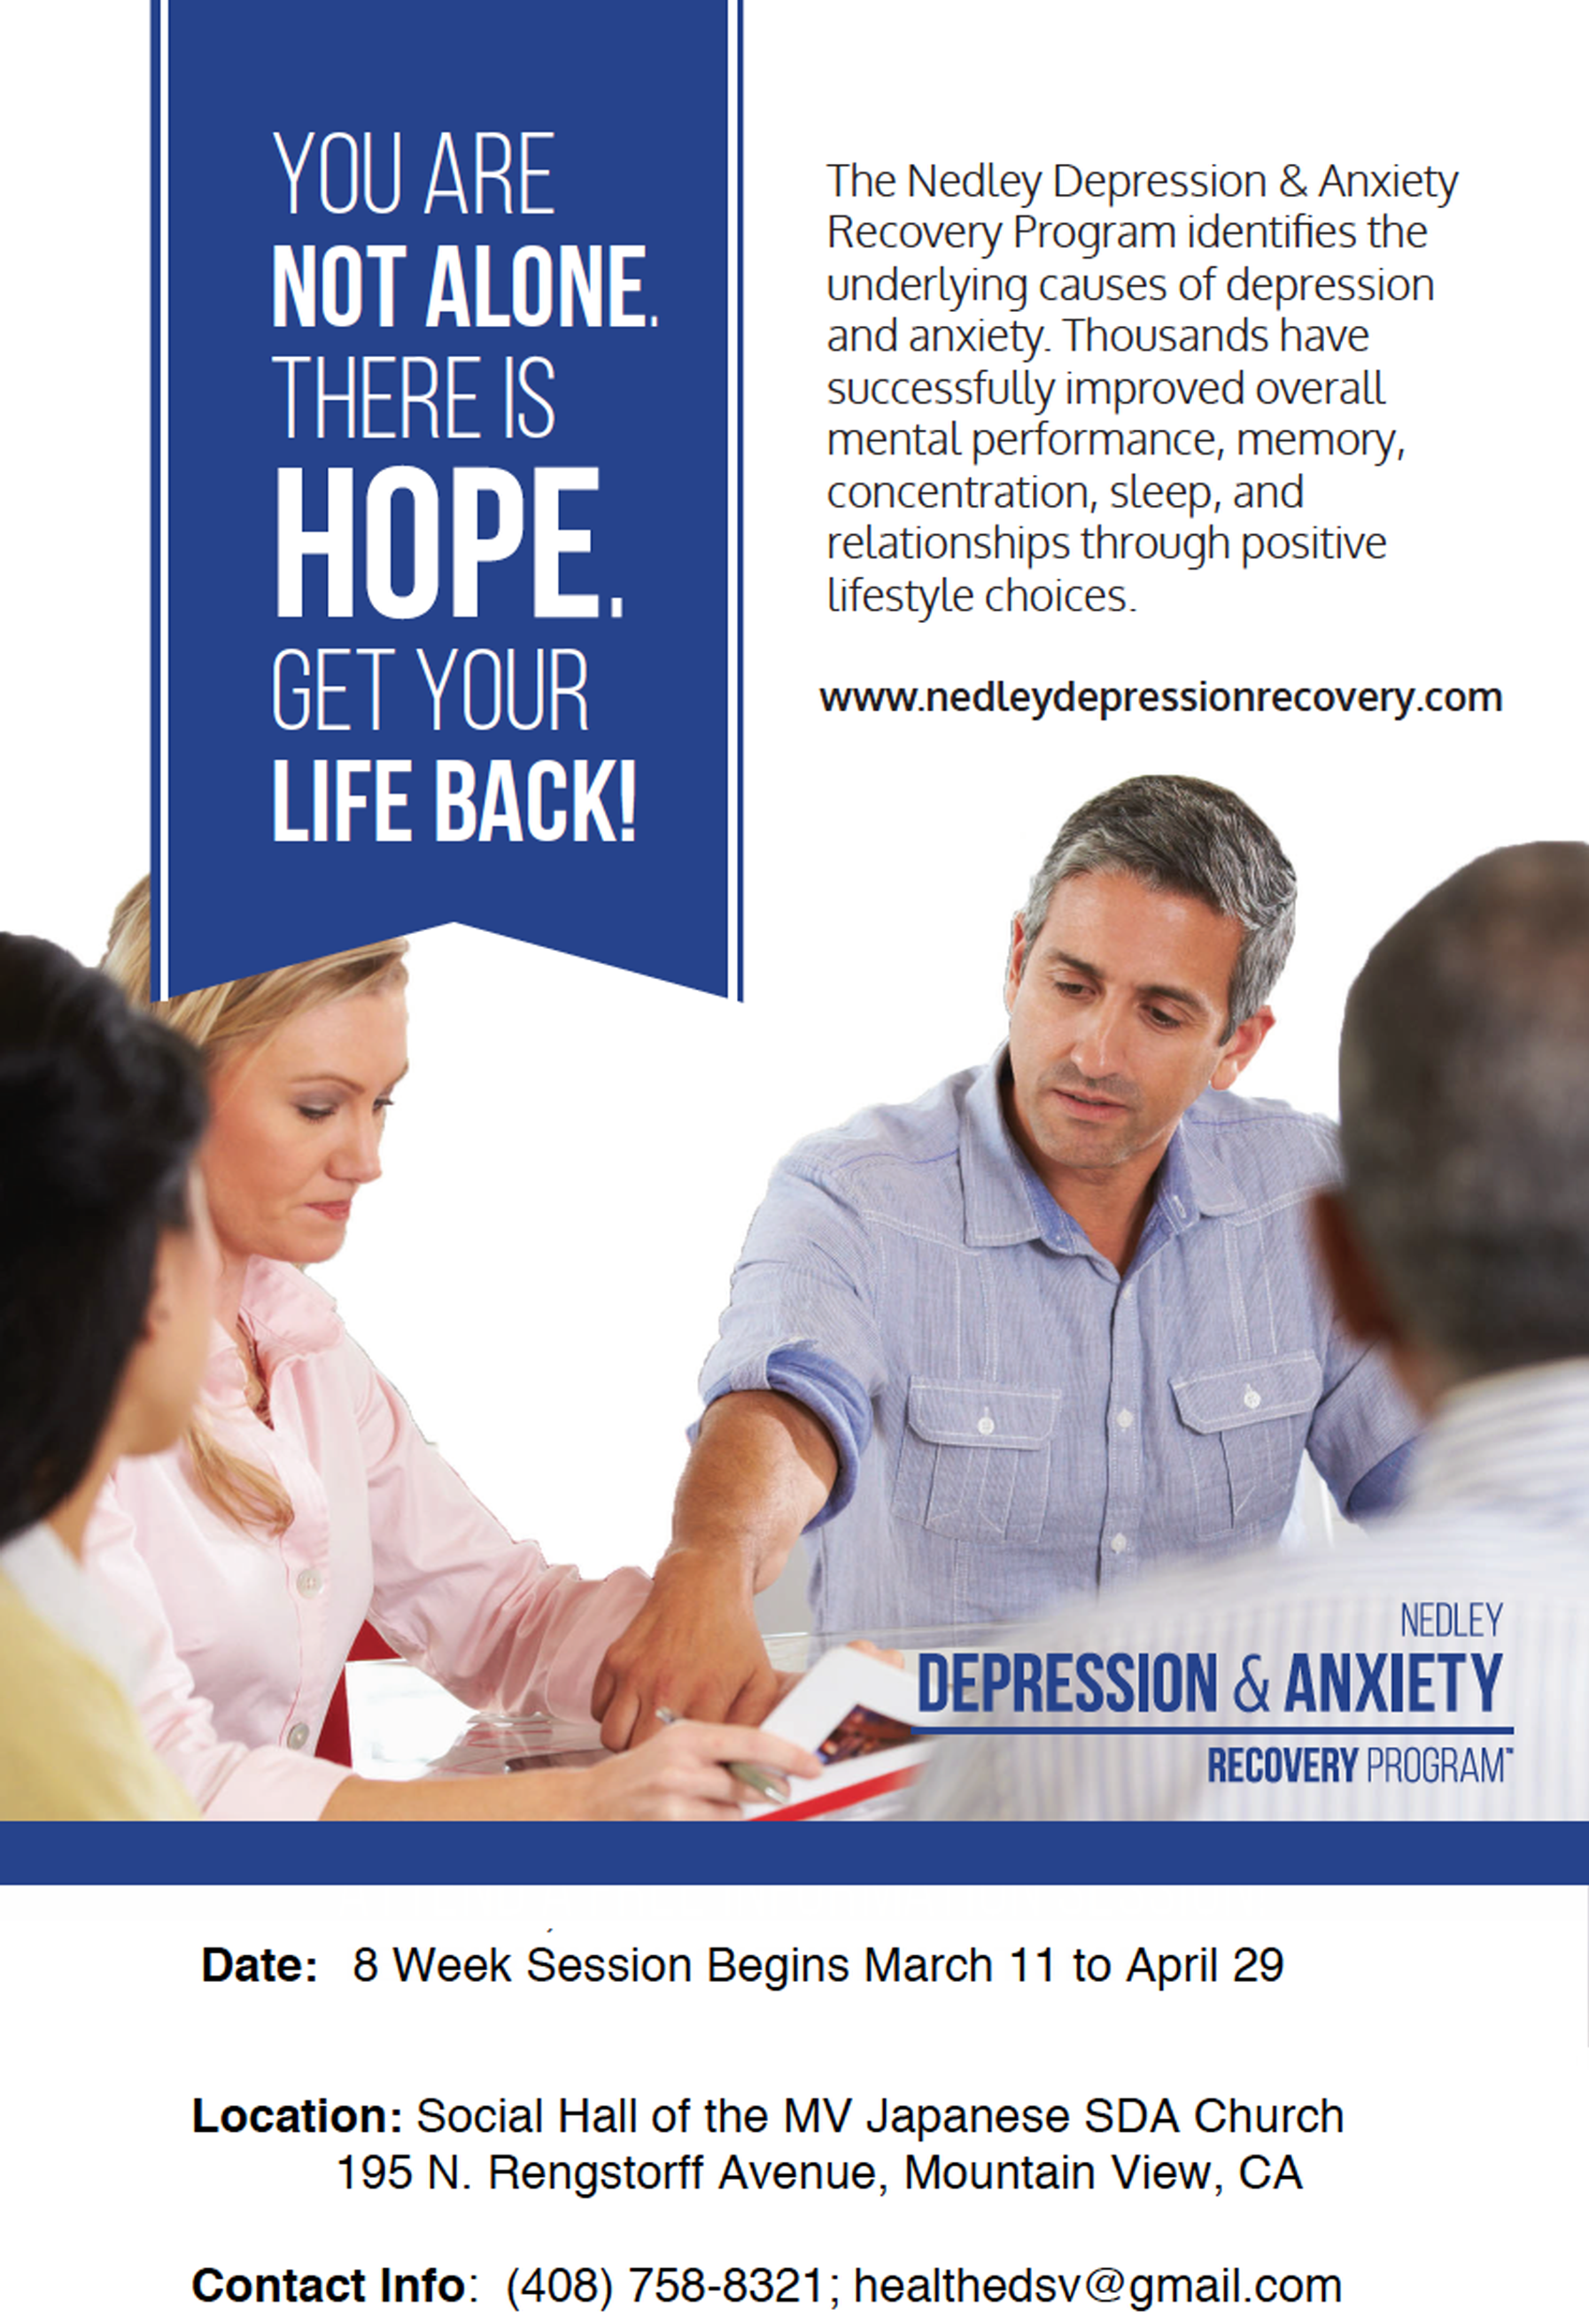 2018 Depression and Anxiety Recovery Program